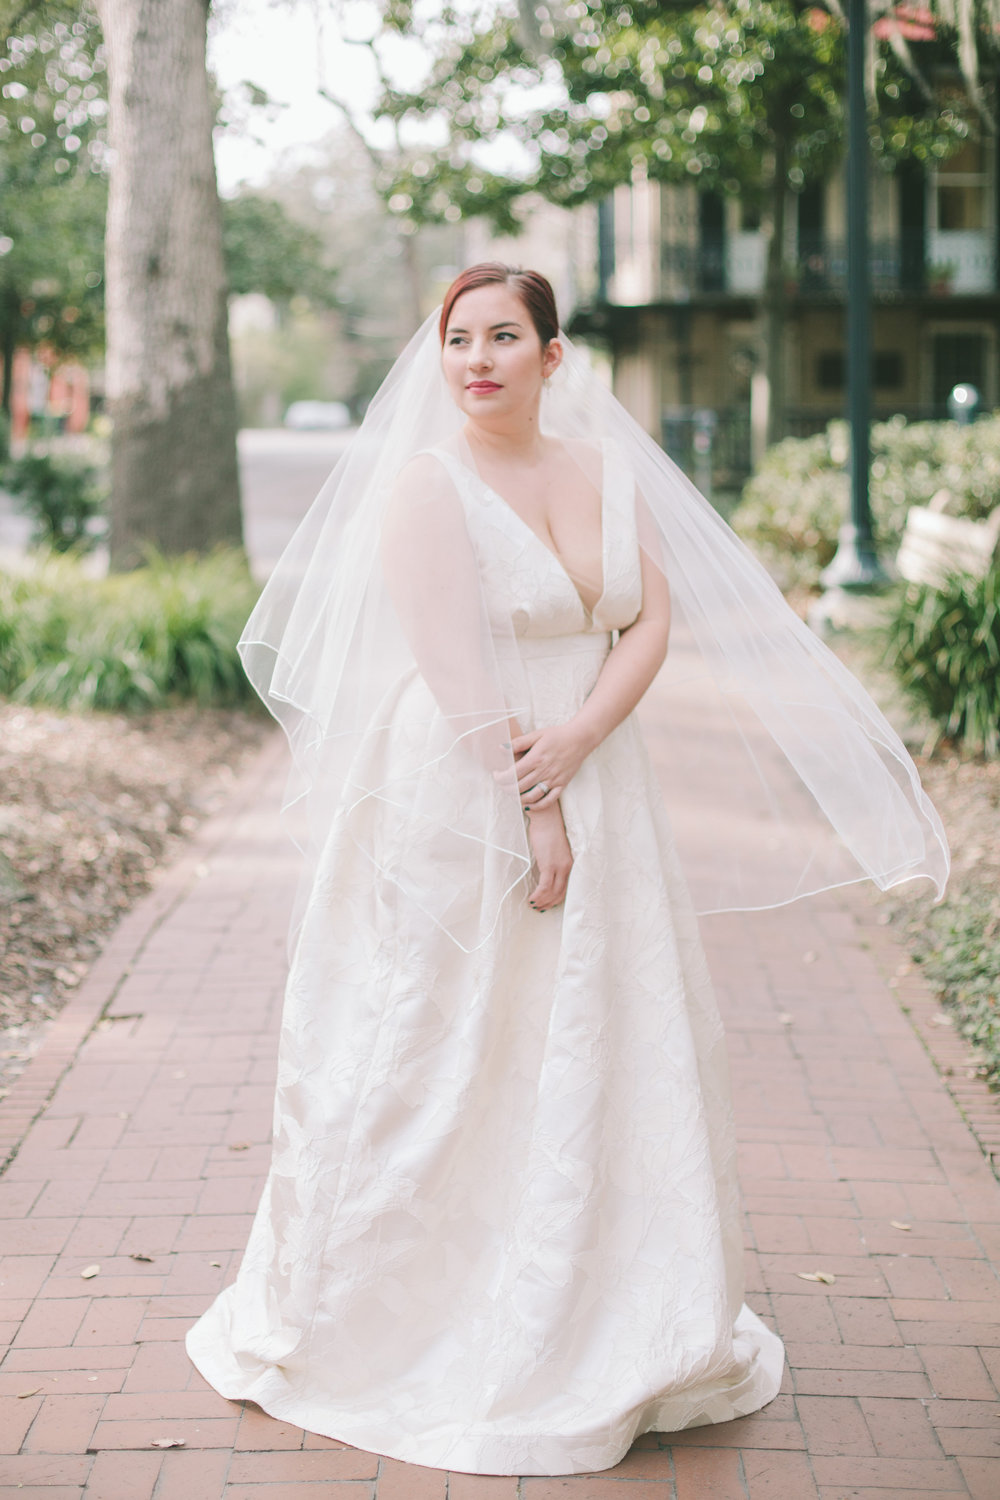 ivory-and-beau-bridal-boutique-jenna-davis-photography-kinsley-rebecca-schoneveld-savannah-bridal-boutique-savannah-bridal-shop-savannah-wedding-dresses-savannah-wedding-photographer-4.jpg